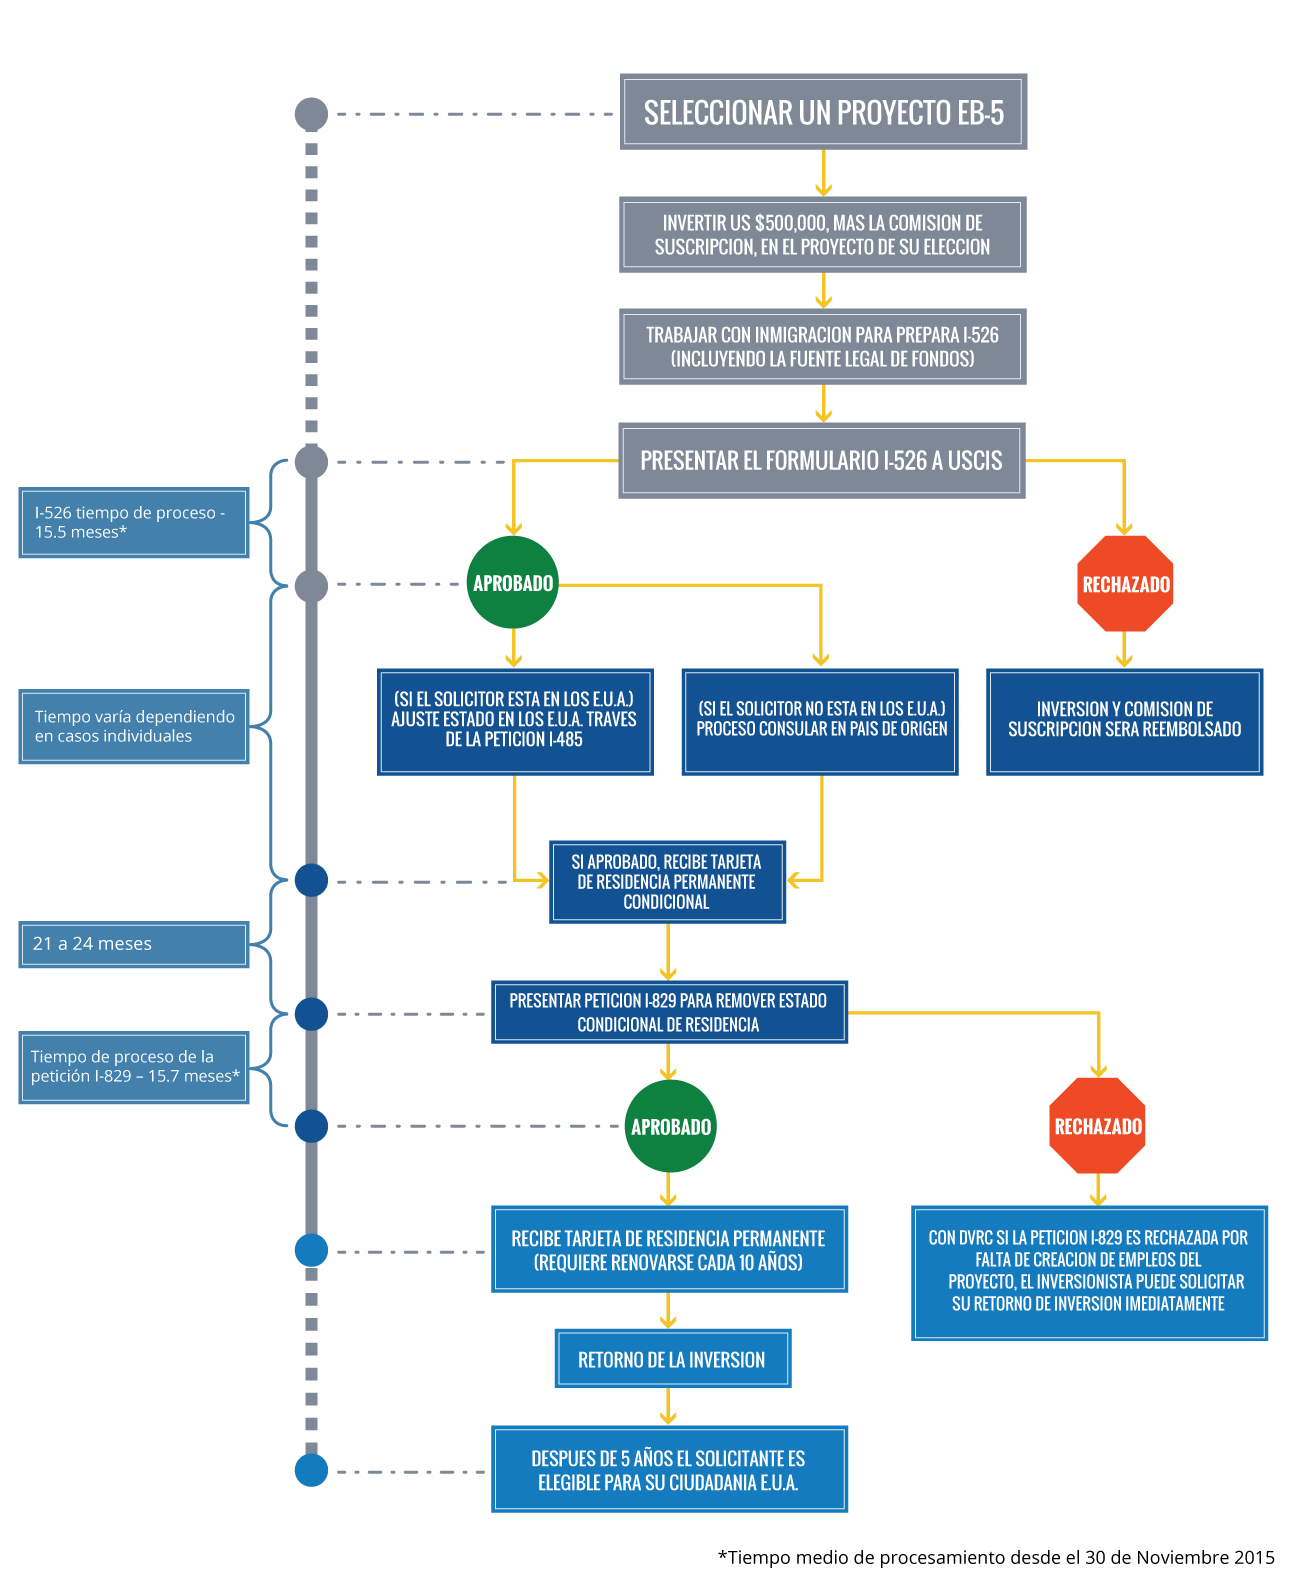 //thedvrc.com/es/wp-content/uploads/sites/9/2016/01/flowchart-spanish-1.png